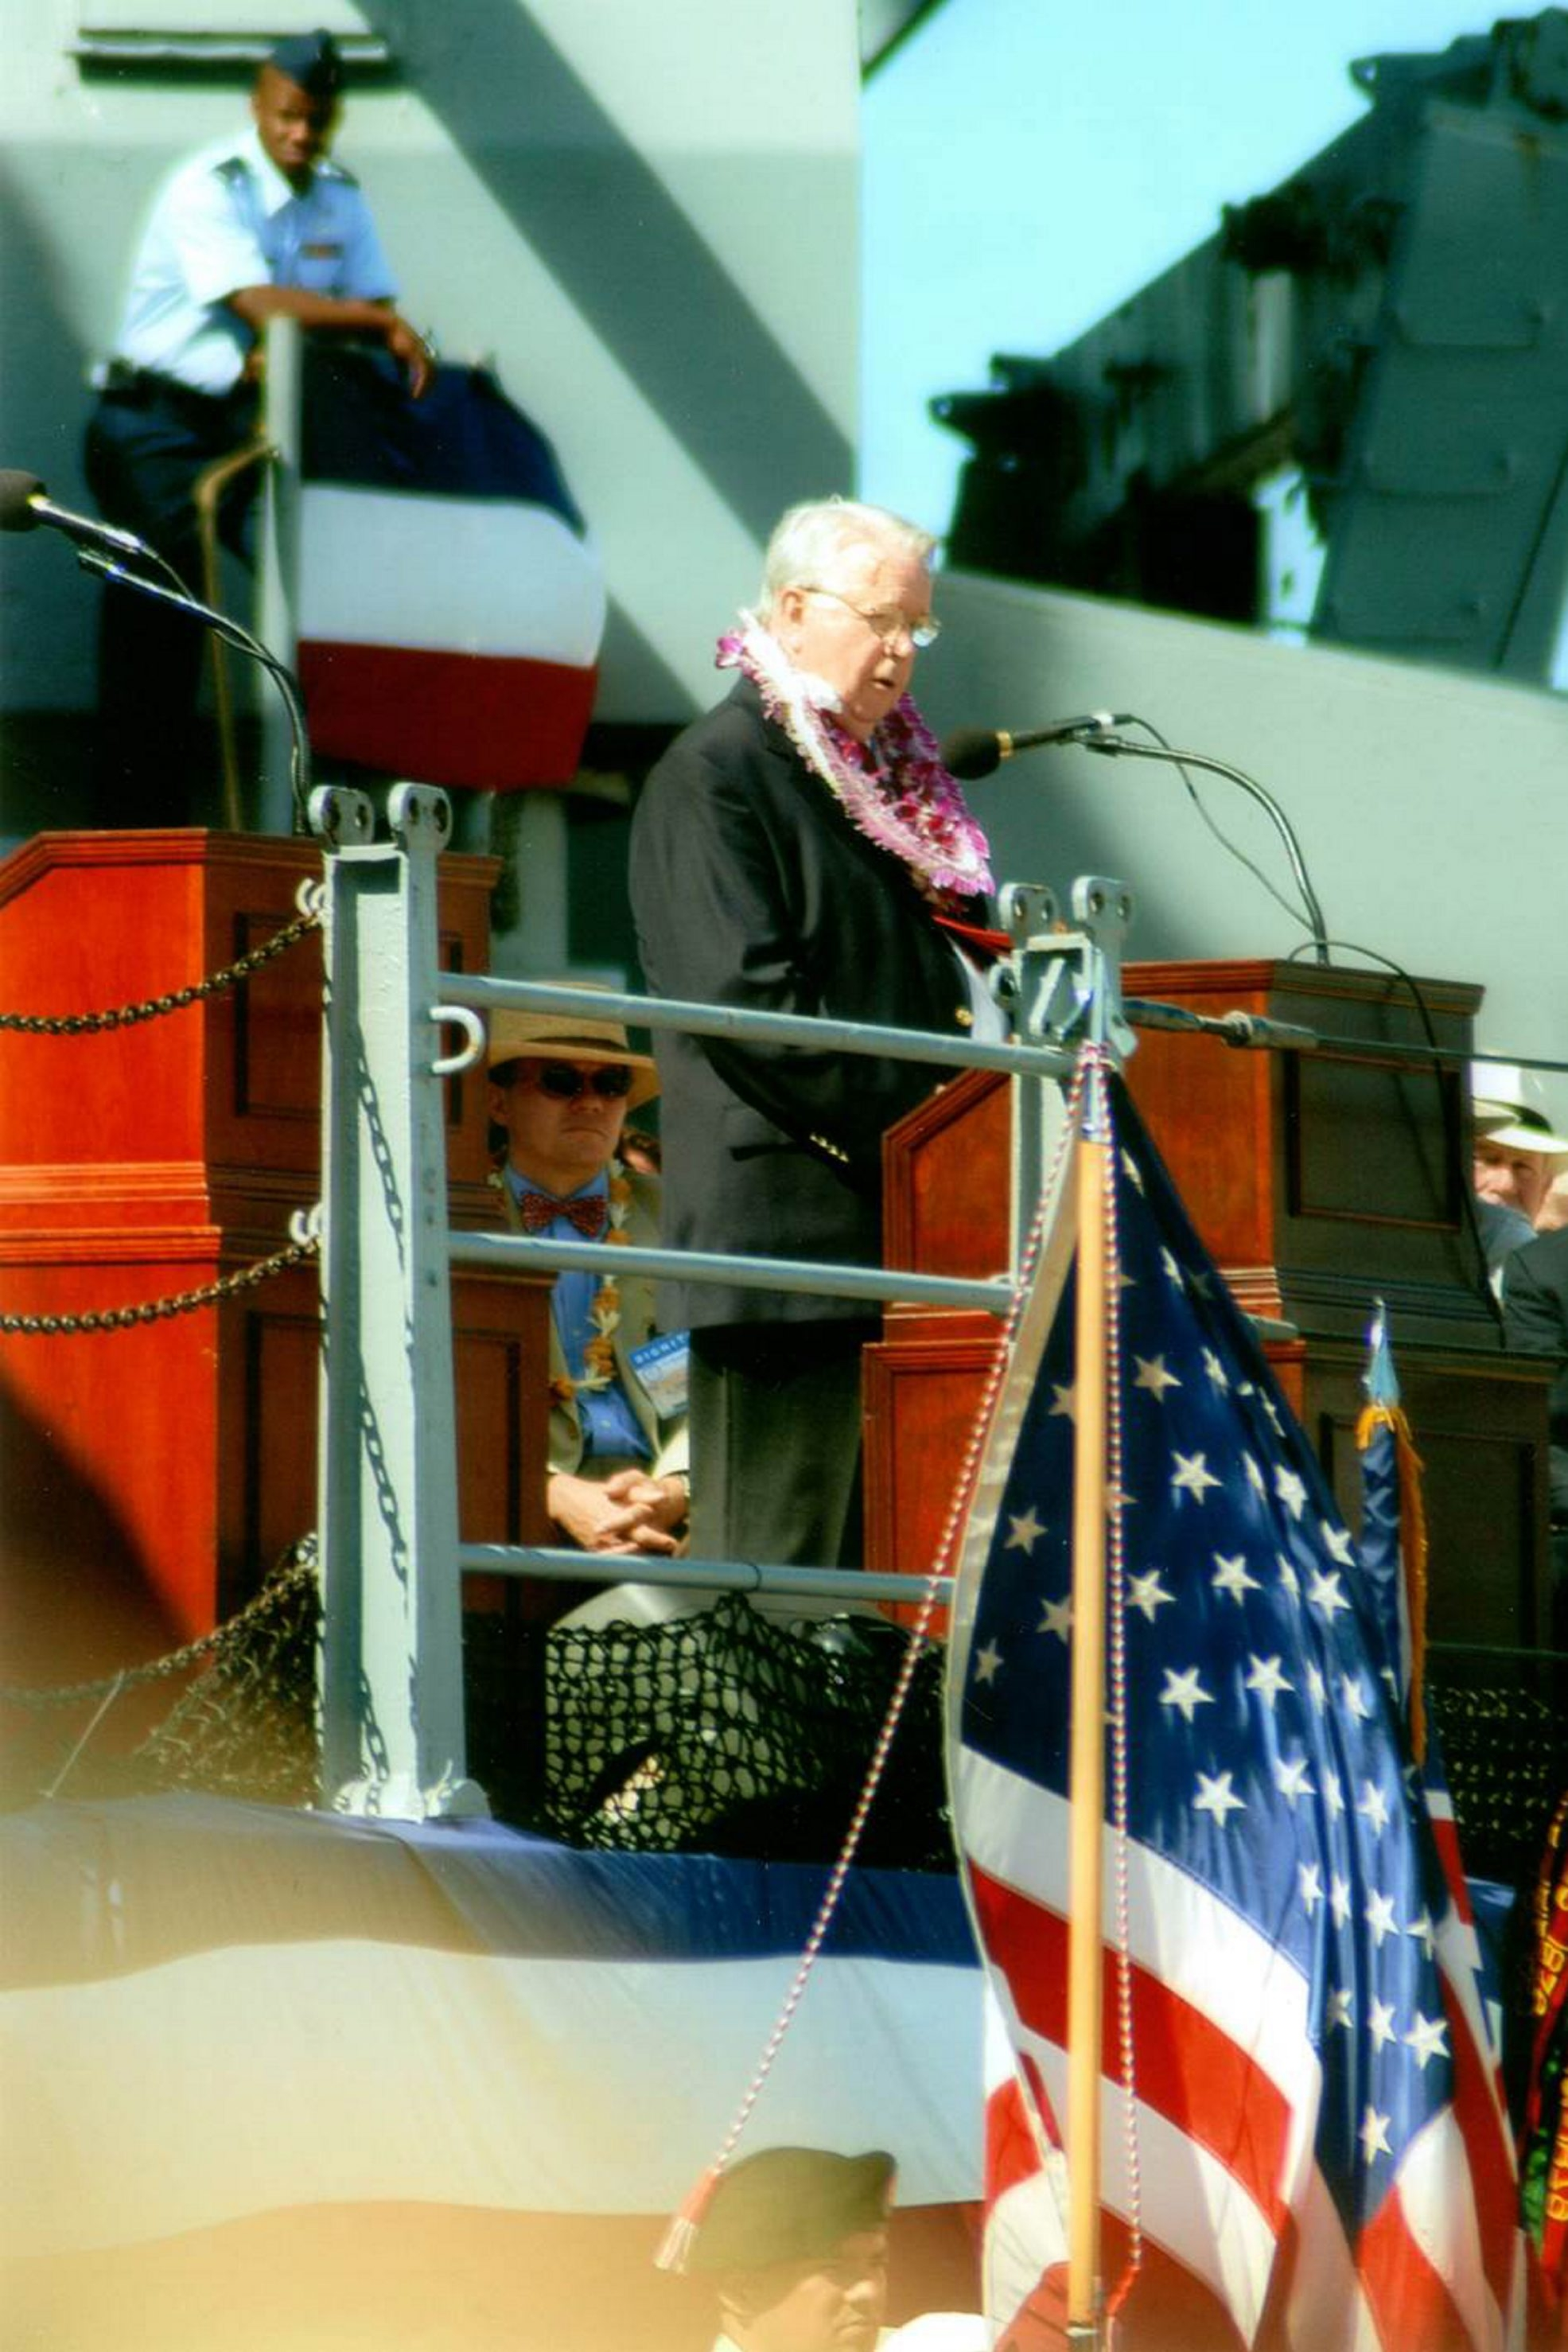 """Retired Navy Lt. Cmdr. James L. Starnes, author of """"Surrender: September 2, 1945,"""" speaks on the USS Missouri at Pearl Harbor in 2005 during 60th-anniversary ceremony commemorating the surrender by Japan to end World War II. Starnes, now 92, was officer of the day on the famed battleship at the event in Tokyo Bay."""